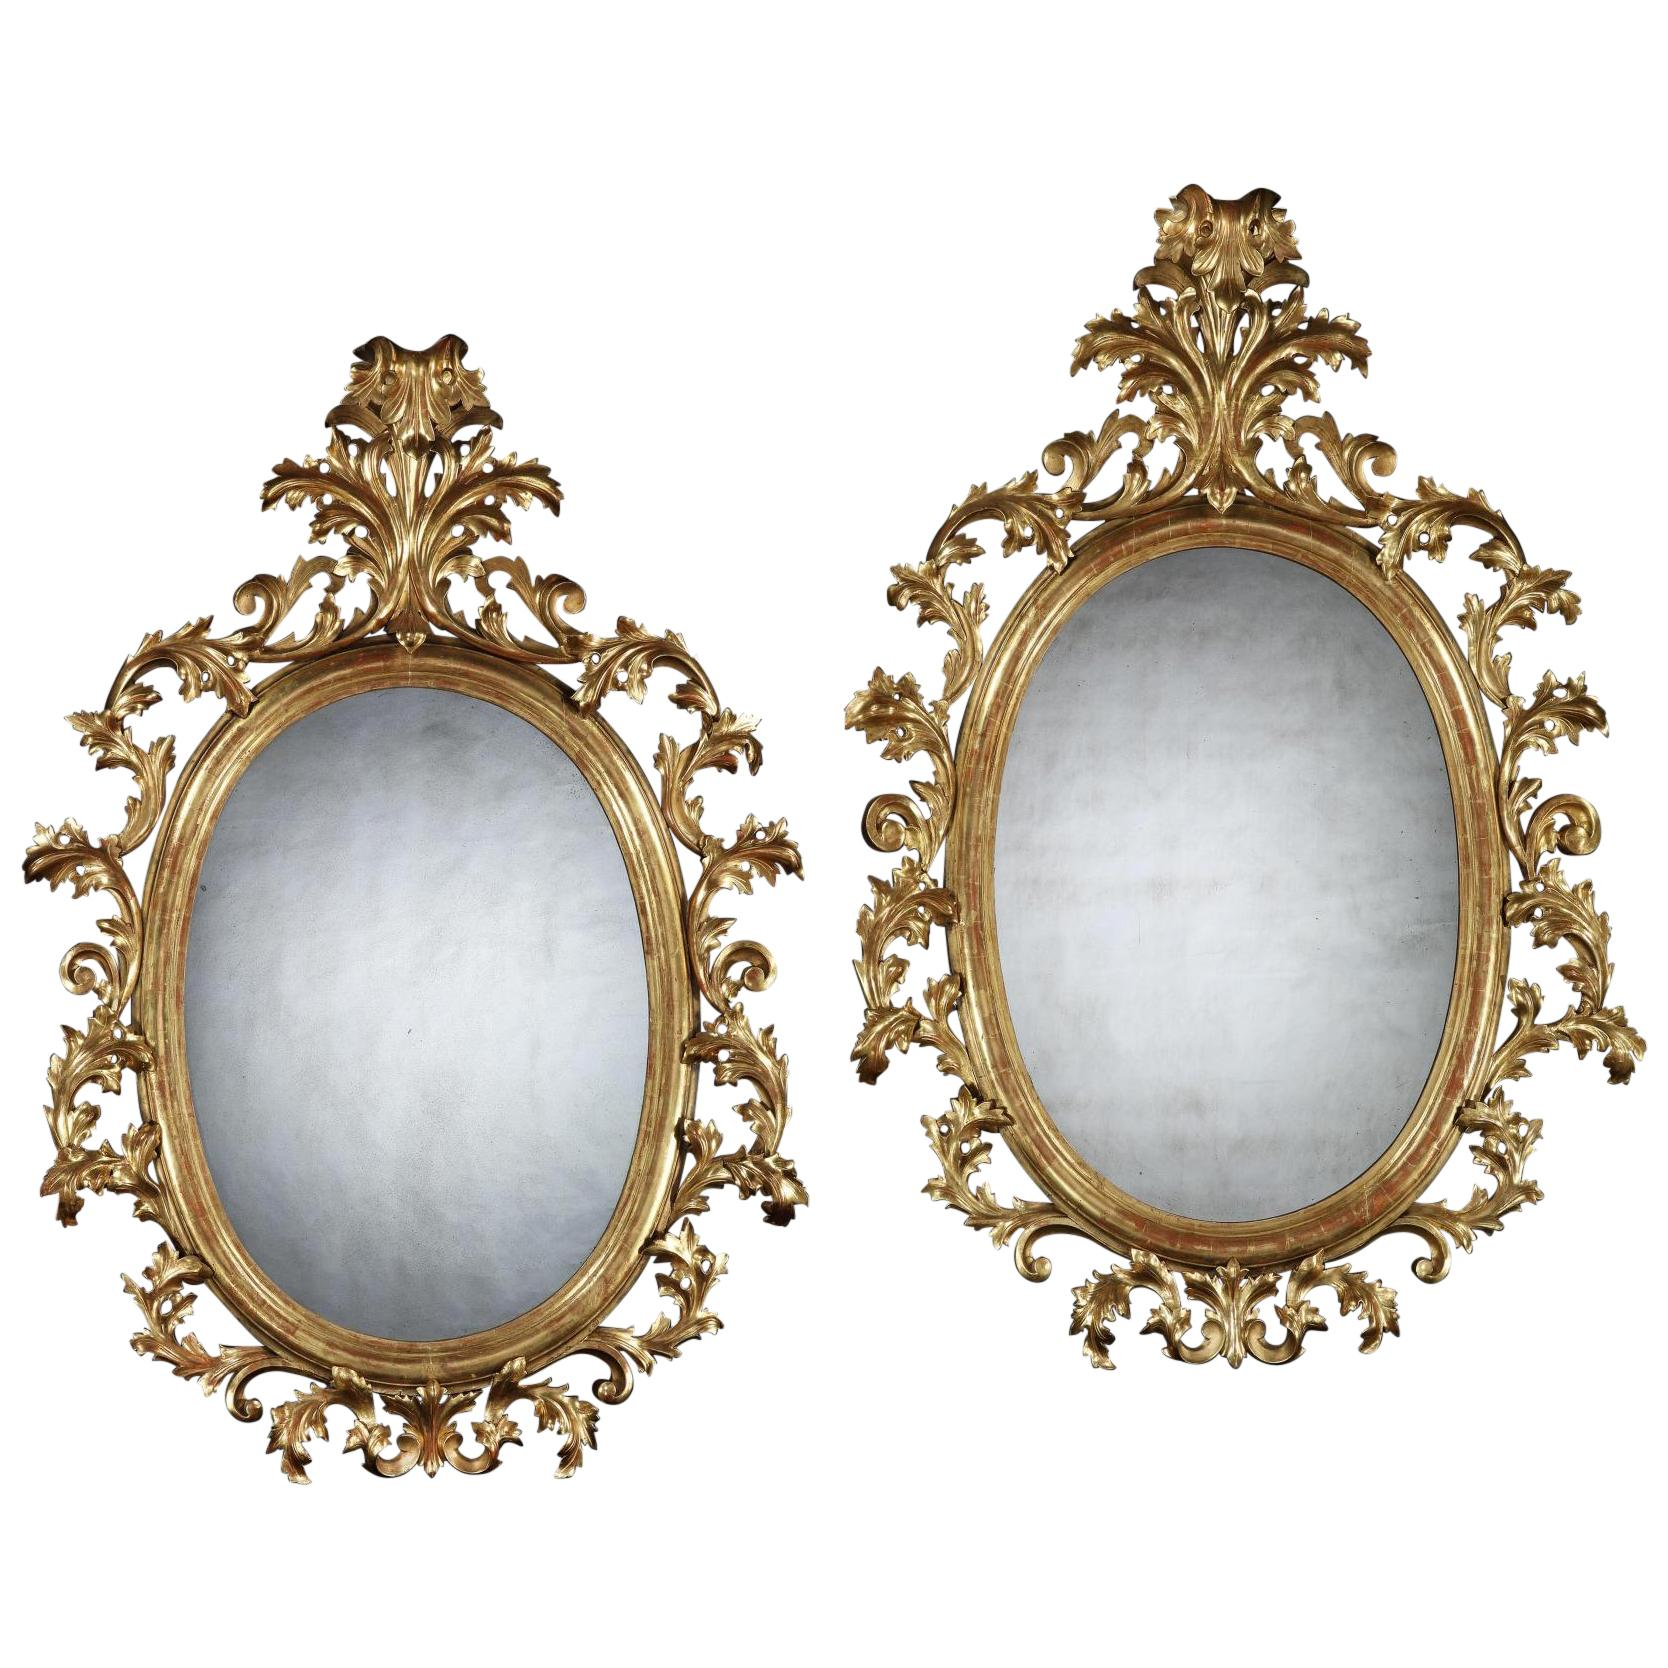 Grand Scale Pair of 19th Century Oval Florentine Carved Giltwood Mirrors